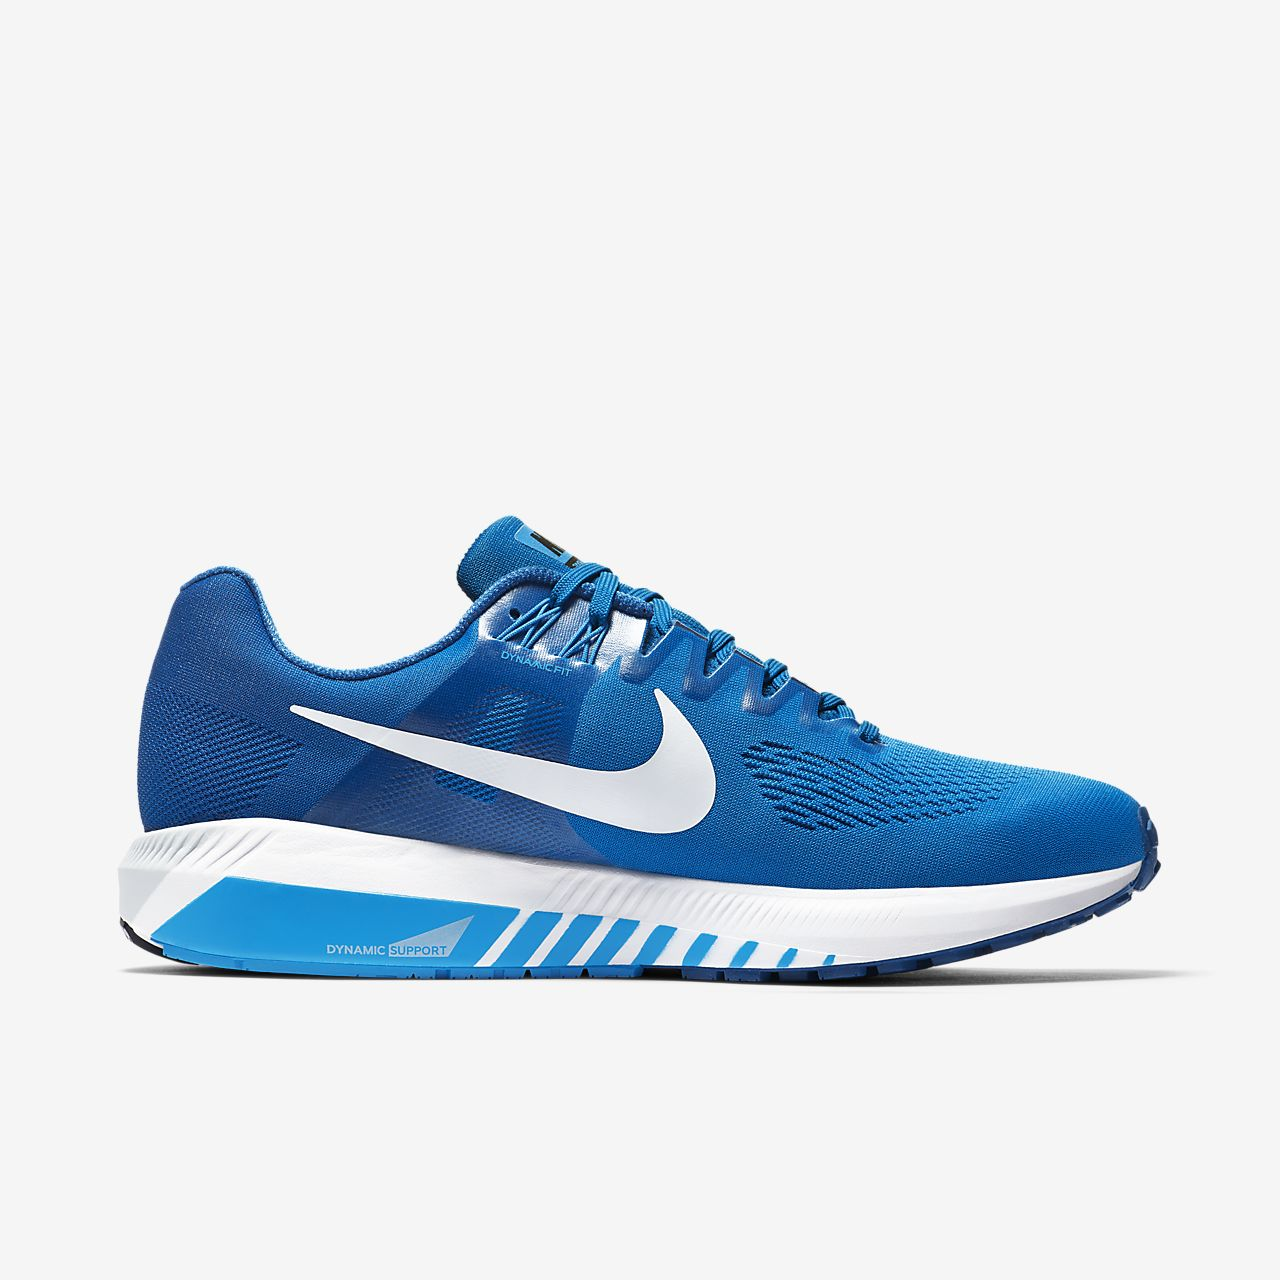 ... Nike Air Zoom Structure 21 Men's Running Shoe